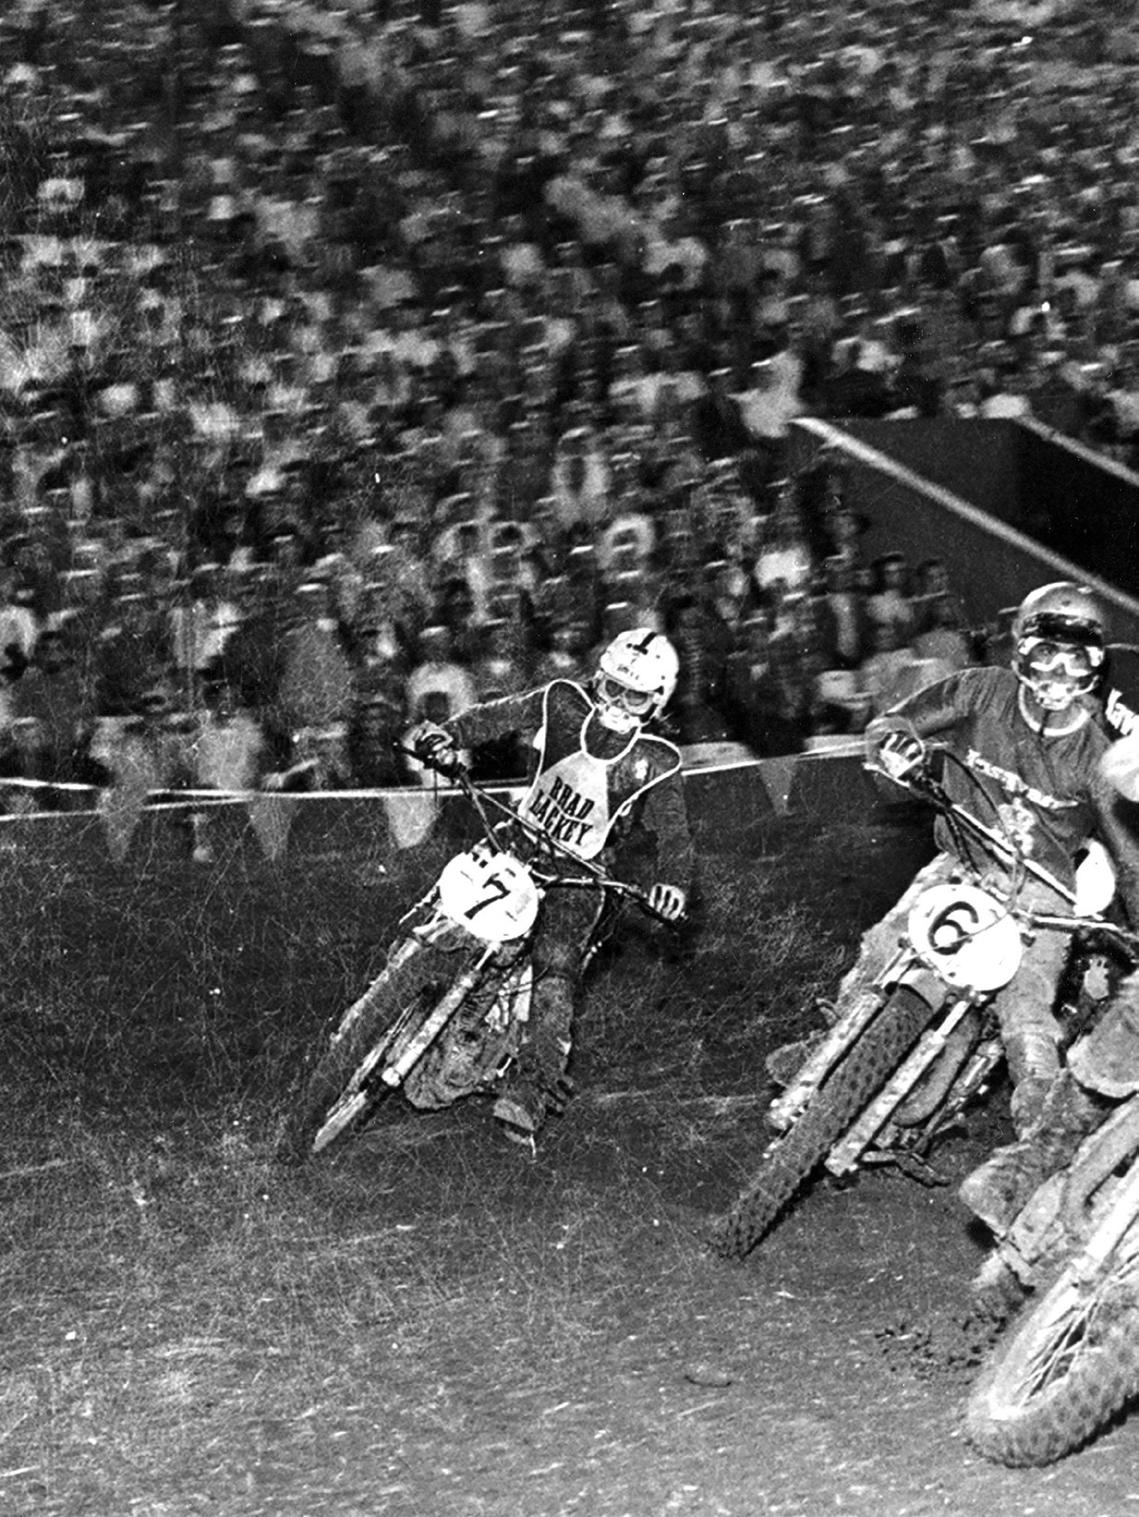 Page 34 of 1972 SUPERBOWL OF MOTOCROSS